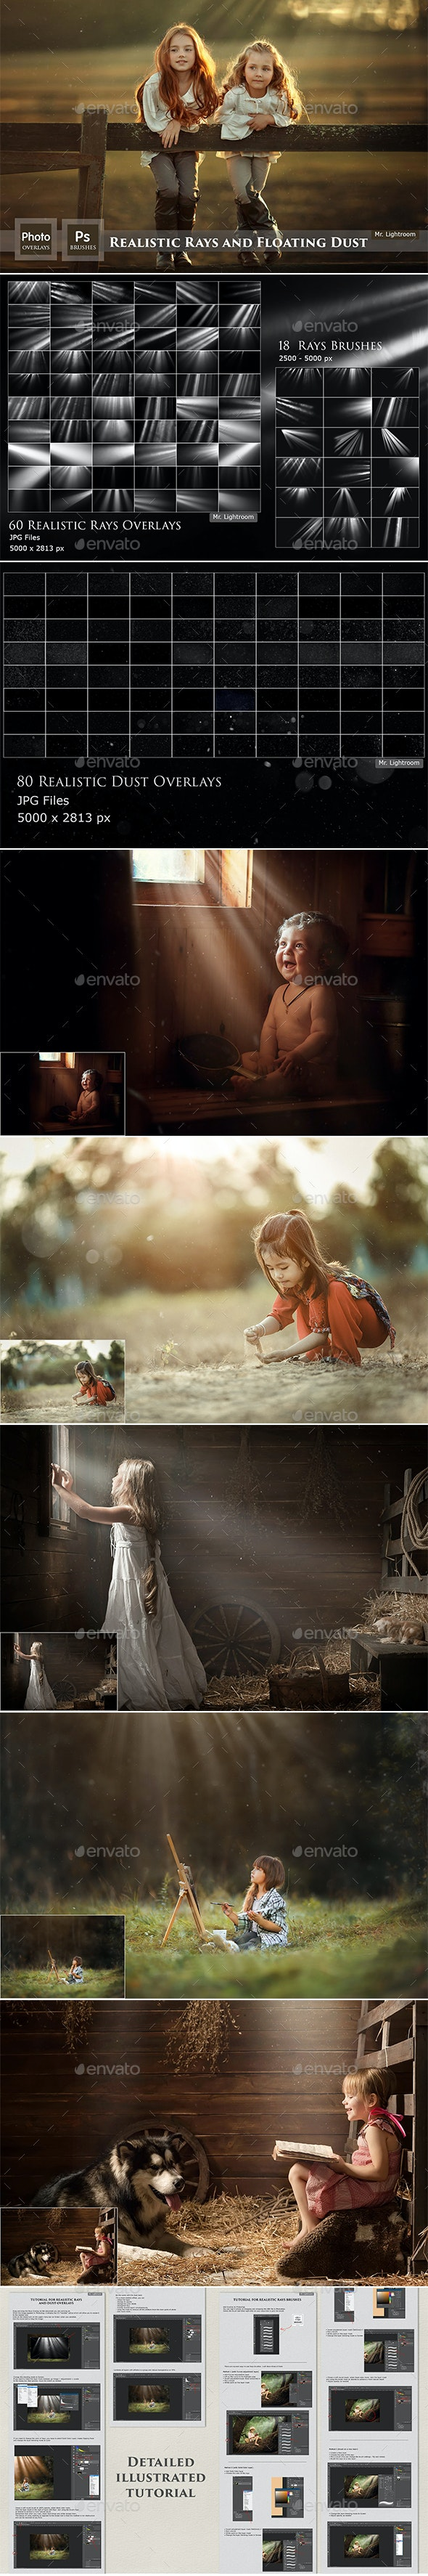 Realistic Rays and Floating Dust Brushes and Overlays - Artistic Photo Templates